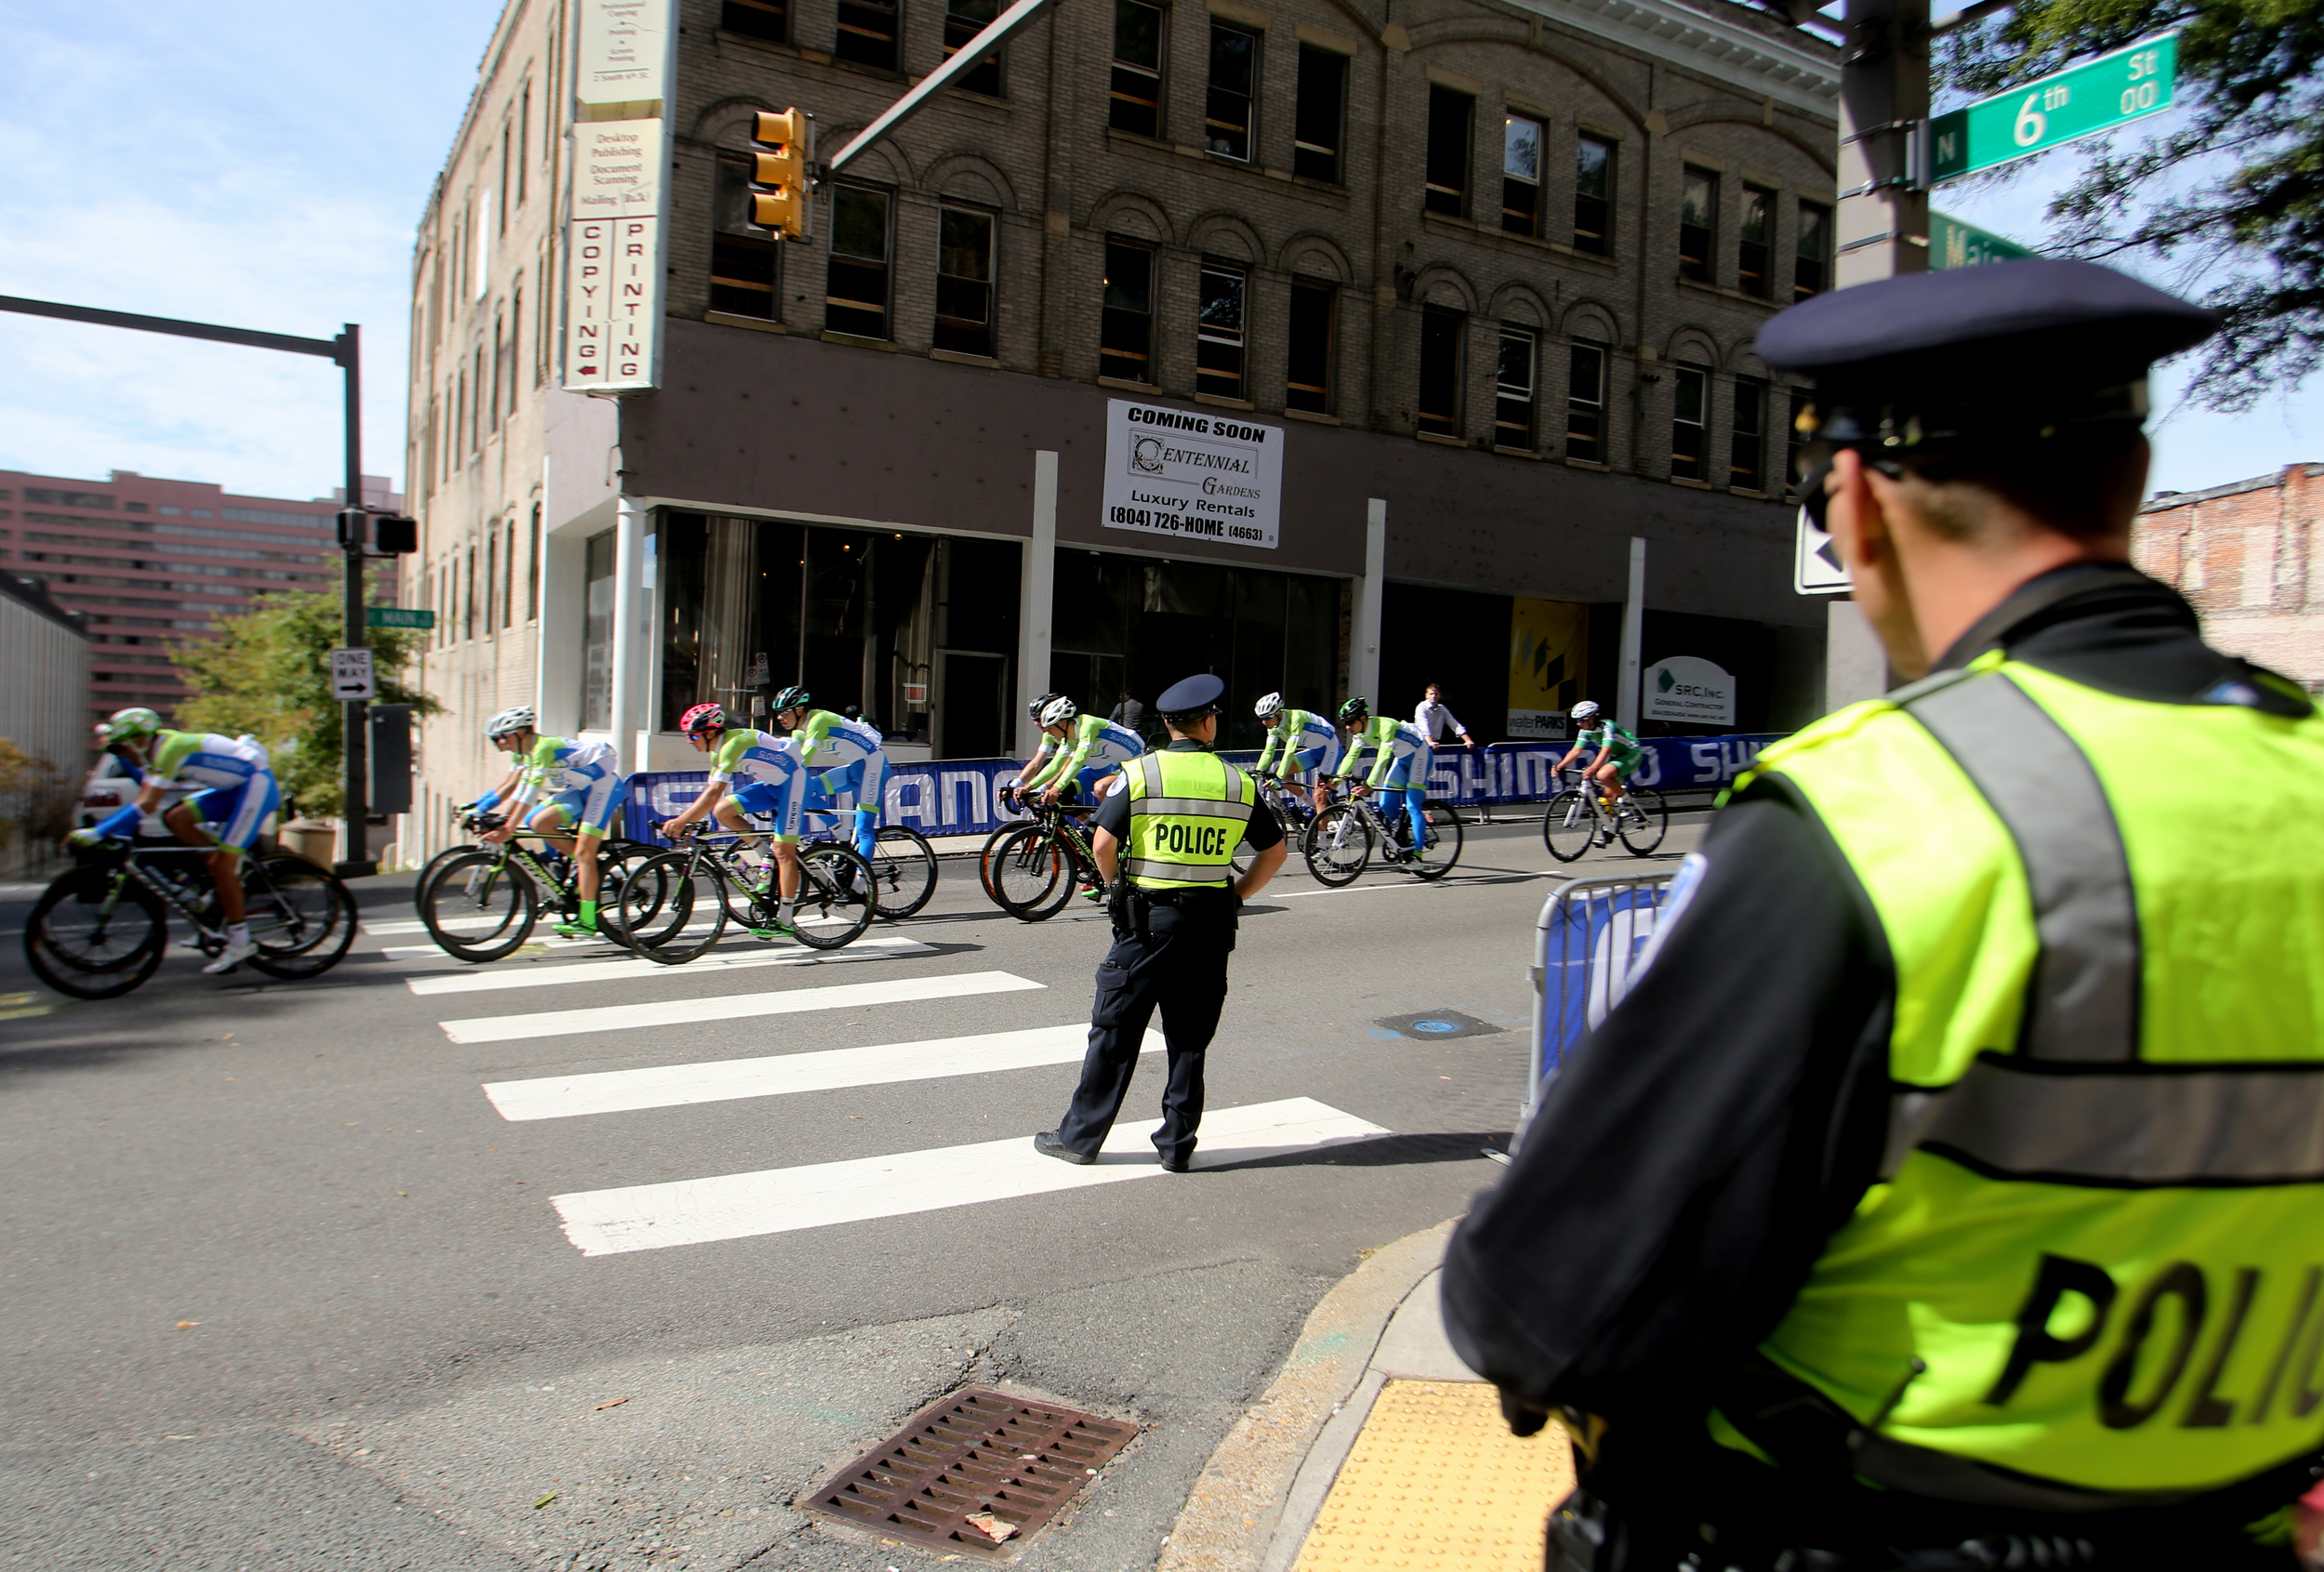 Police keep a watchful eye as riders pass by during the Road Circuit Training portion of the UCI Road World Championships cycling races in Richmond, Va., Thursday, Sept. 24, 2015.  (AP Photo/Jason Hirschfeld)